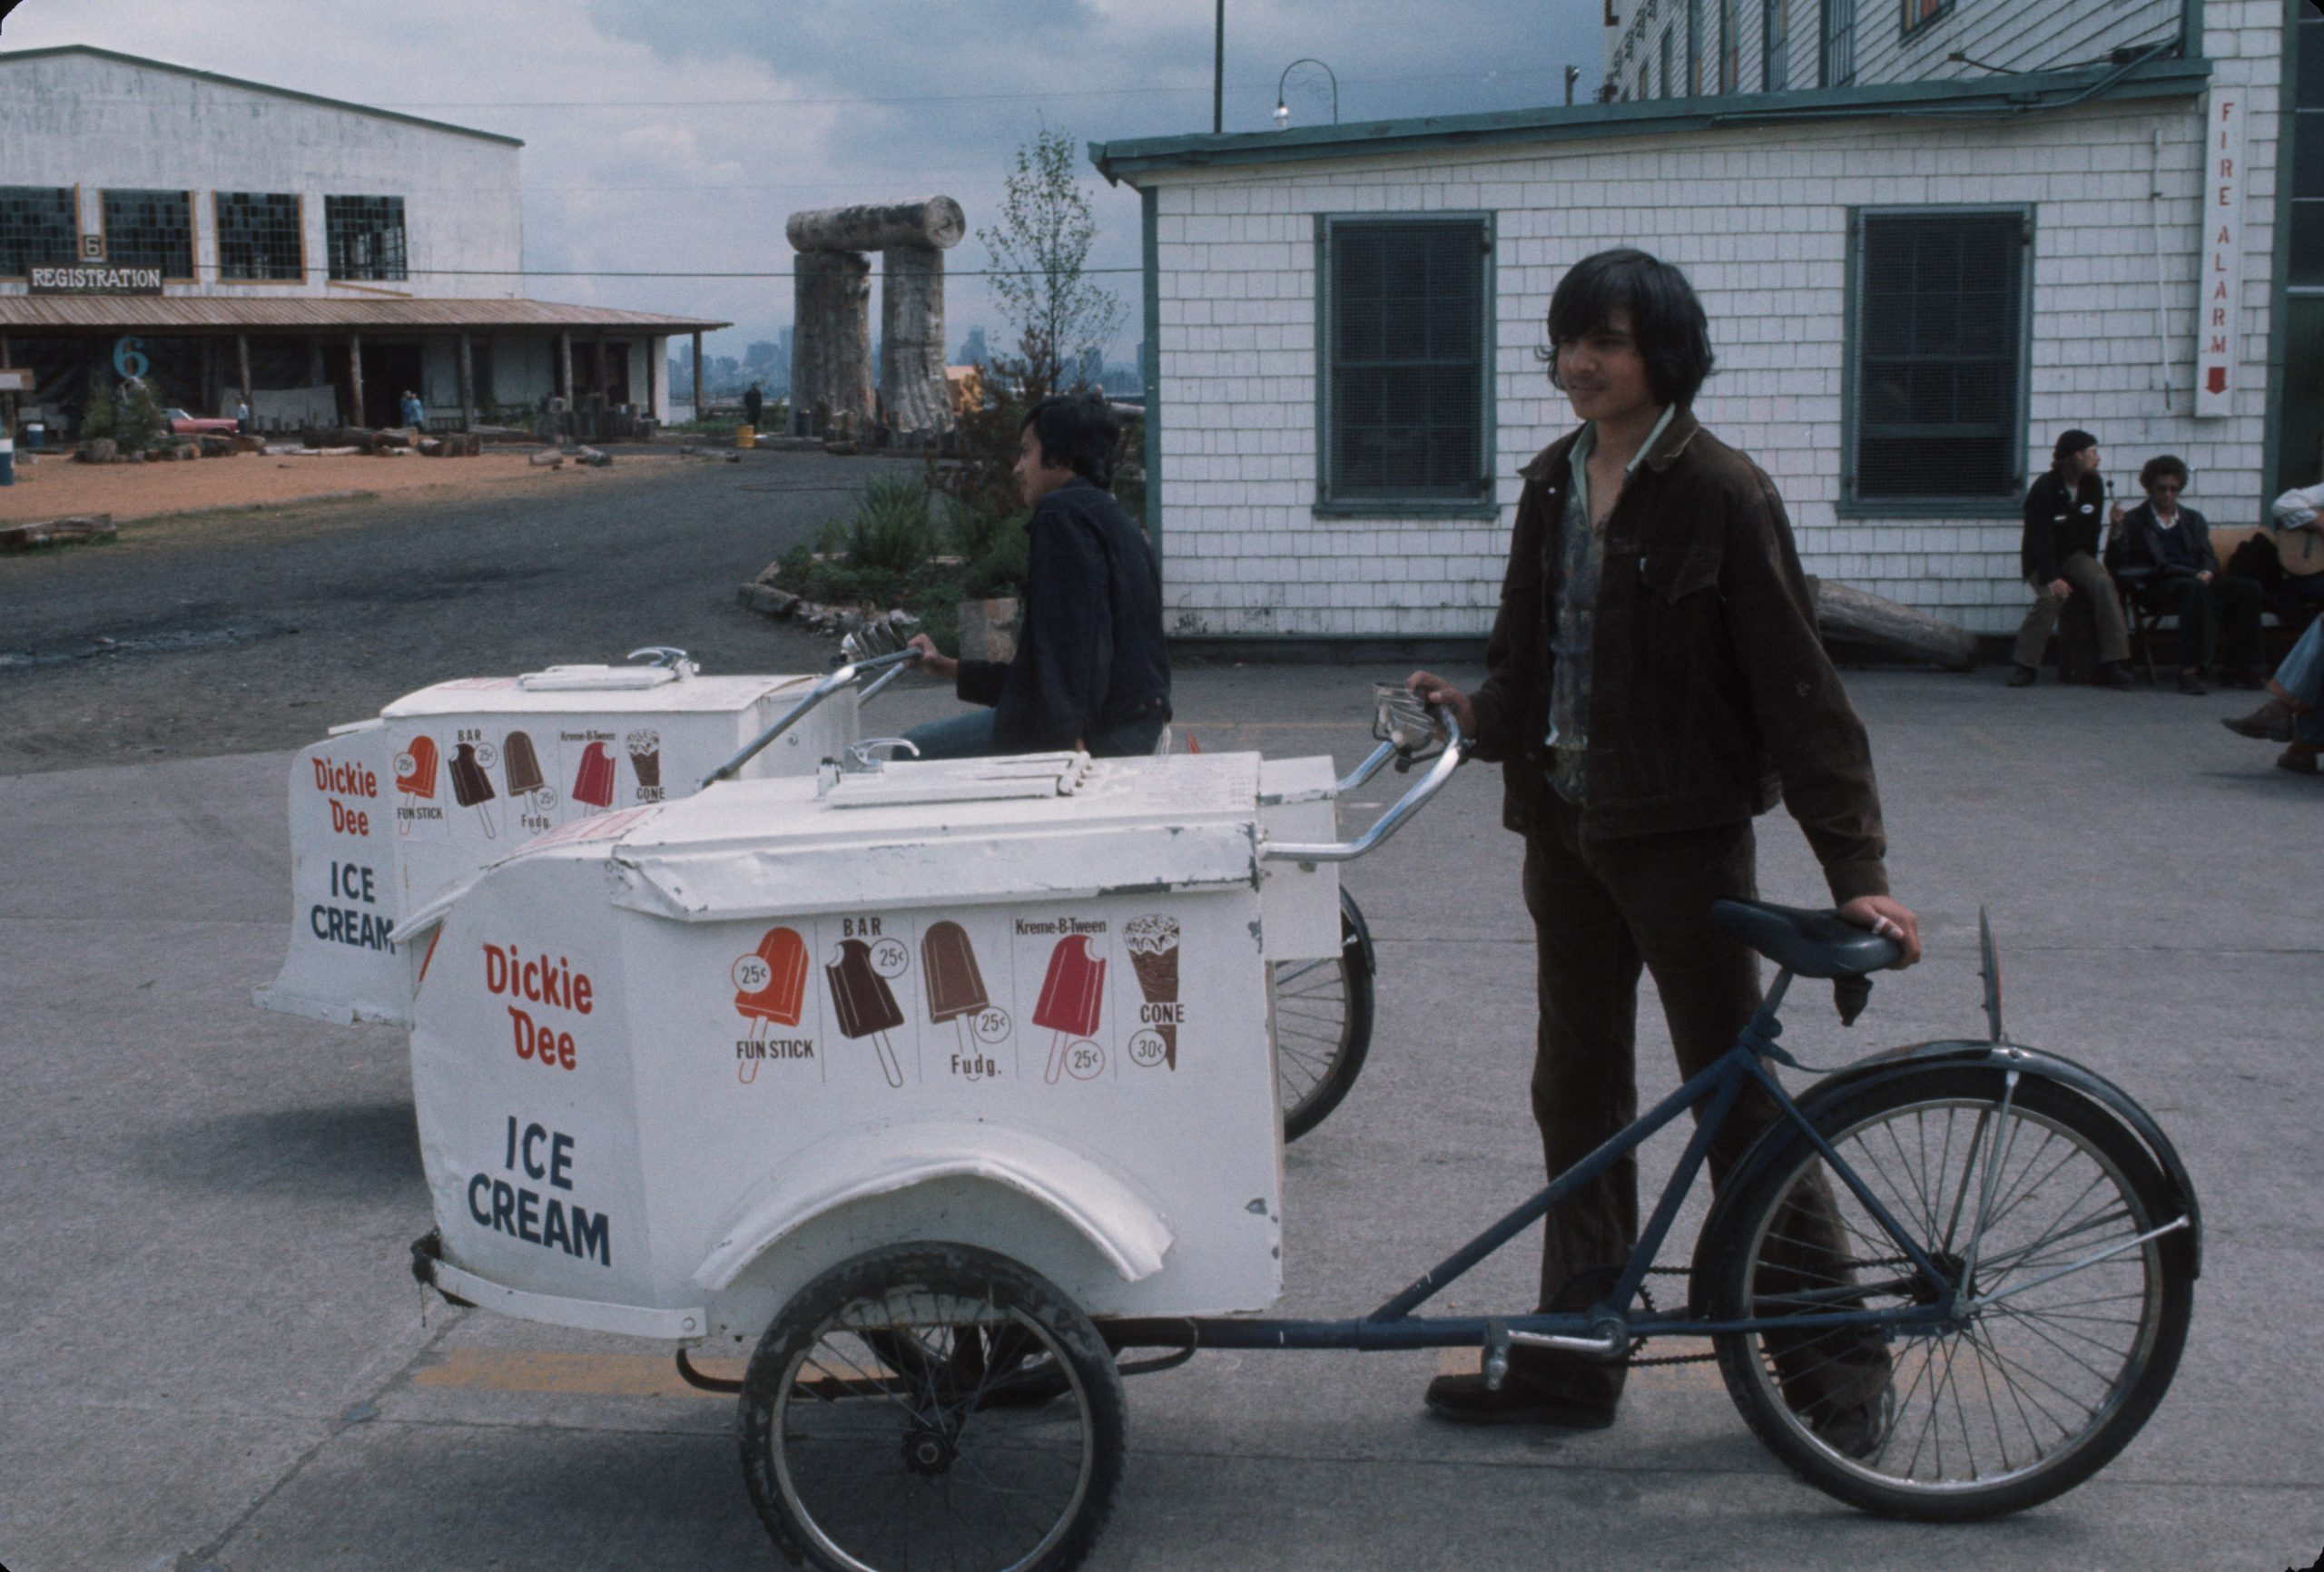 Dickie Dee Ice Cream cart at Habitat Forum. Reference code: AM1671-: 2011-130.1329